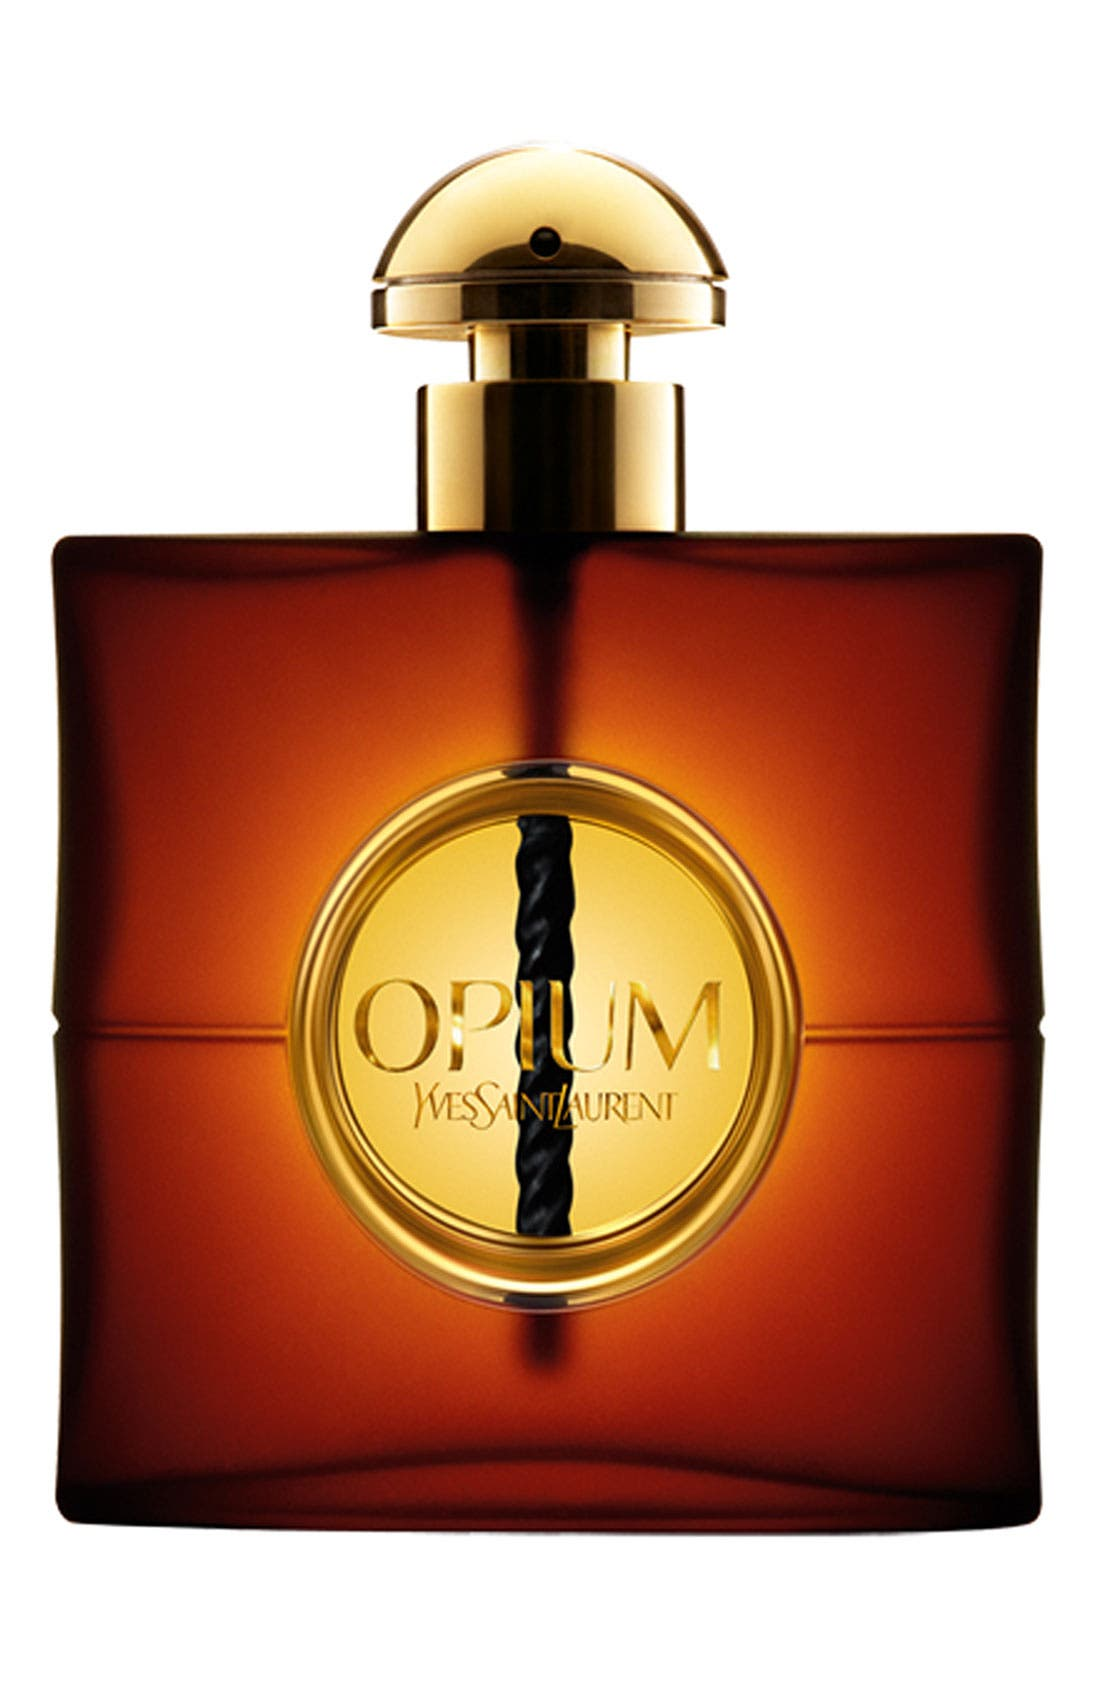 Yves Saint Laurent 'Opium' Eau de Parfum Spray